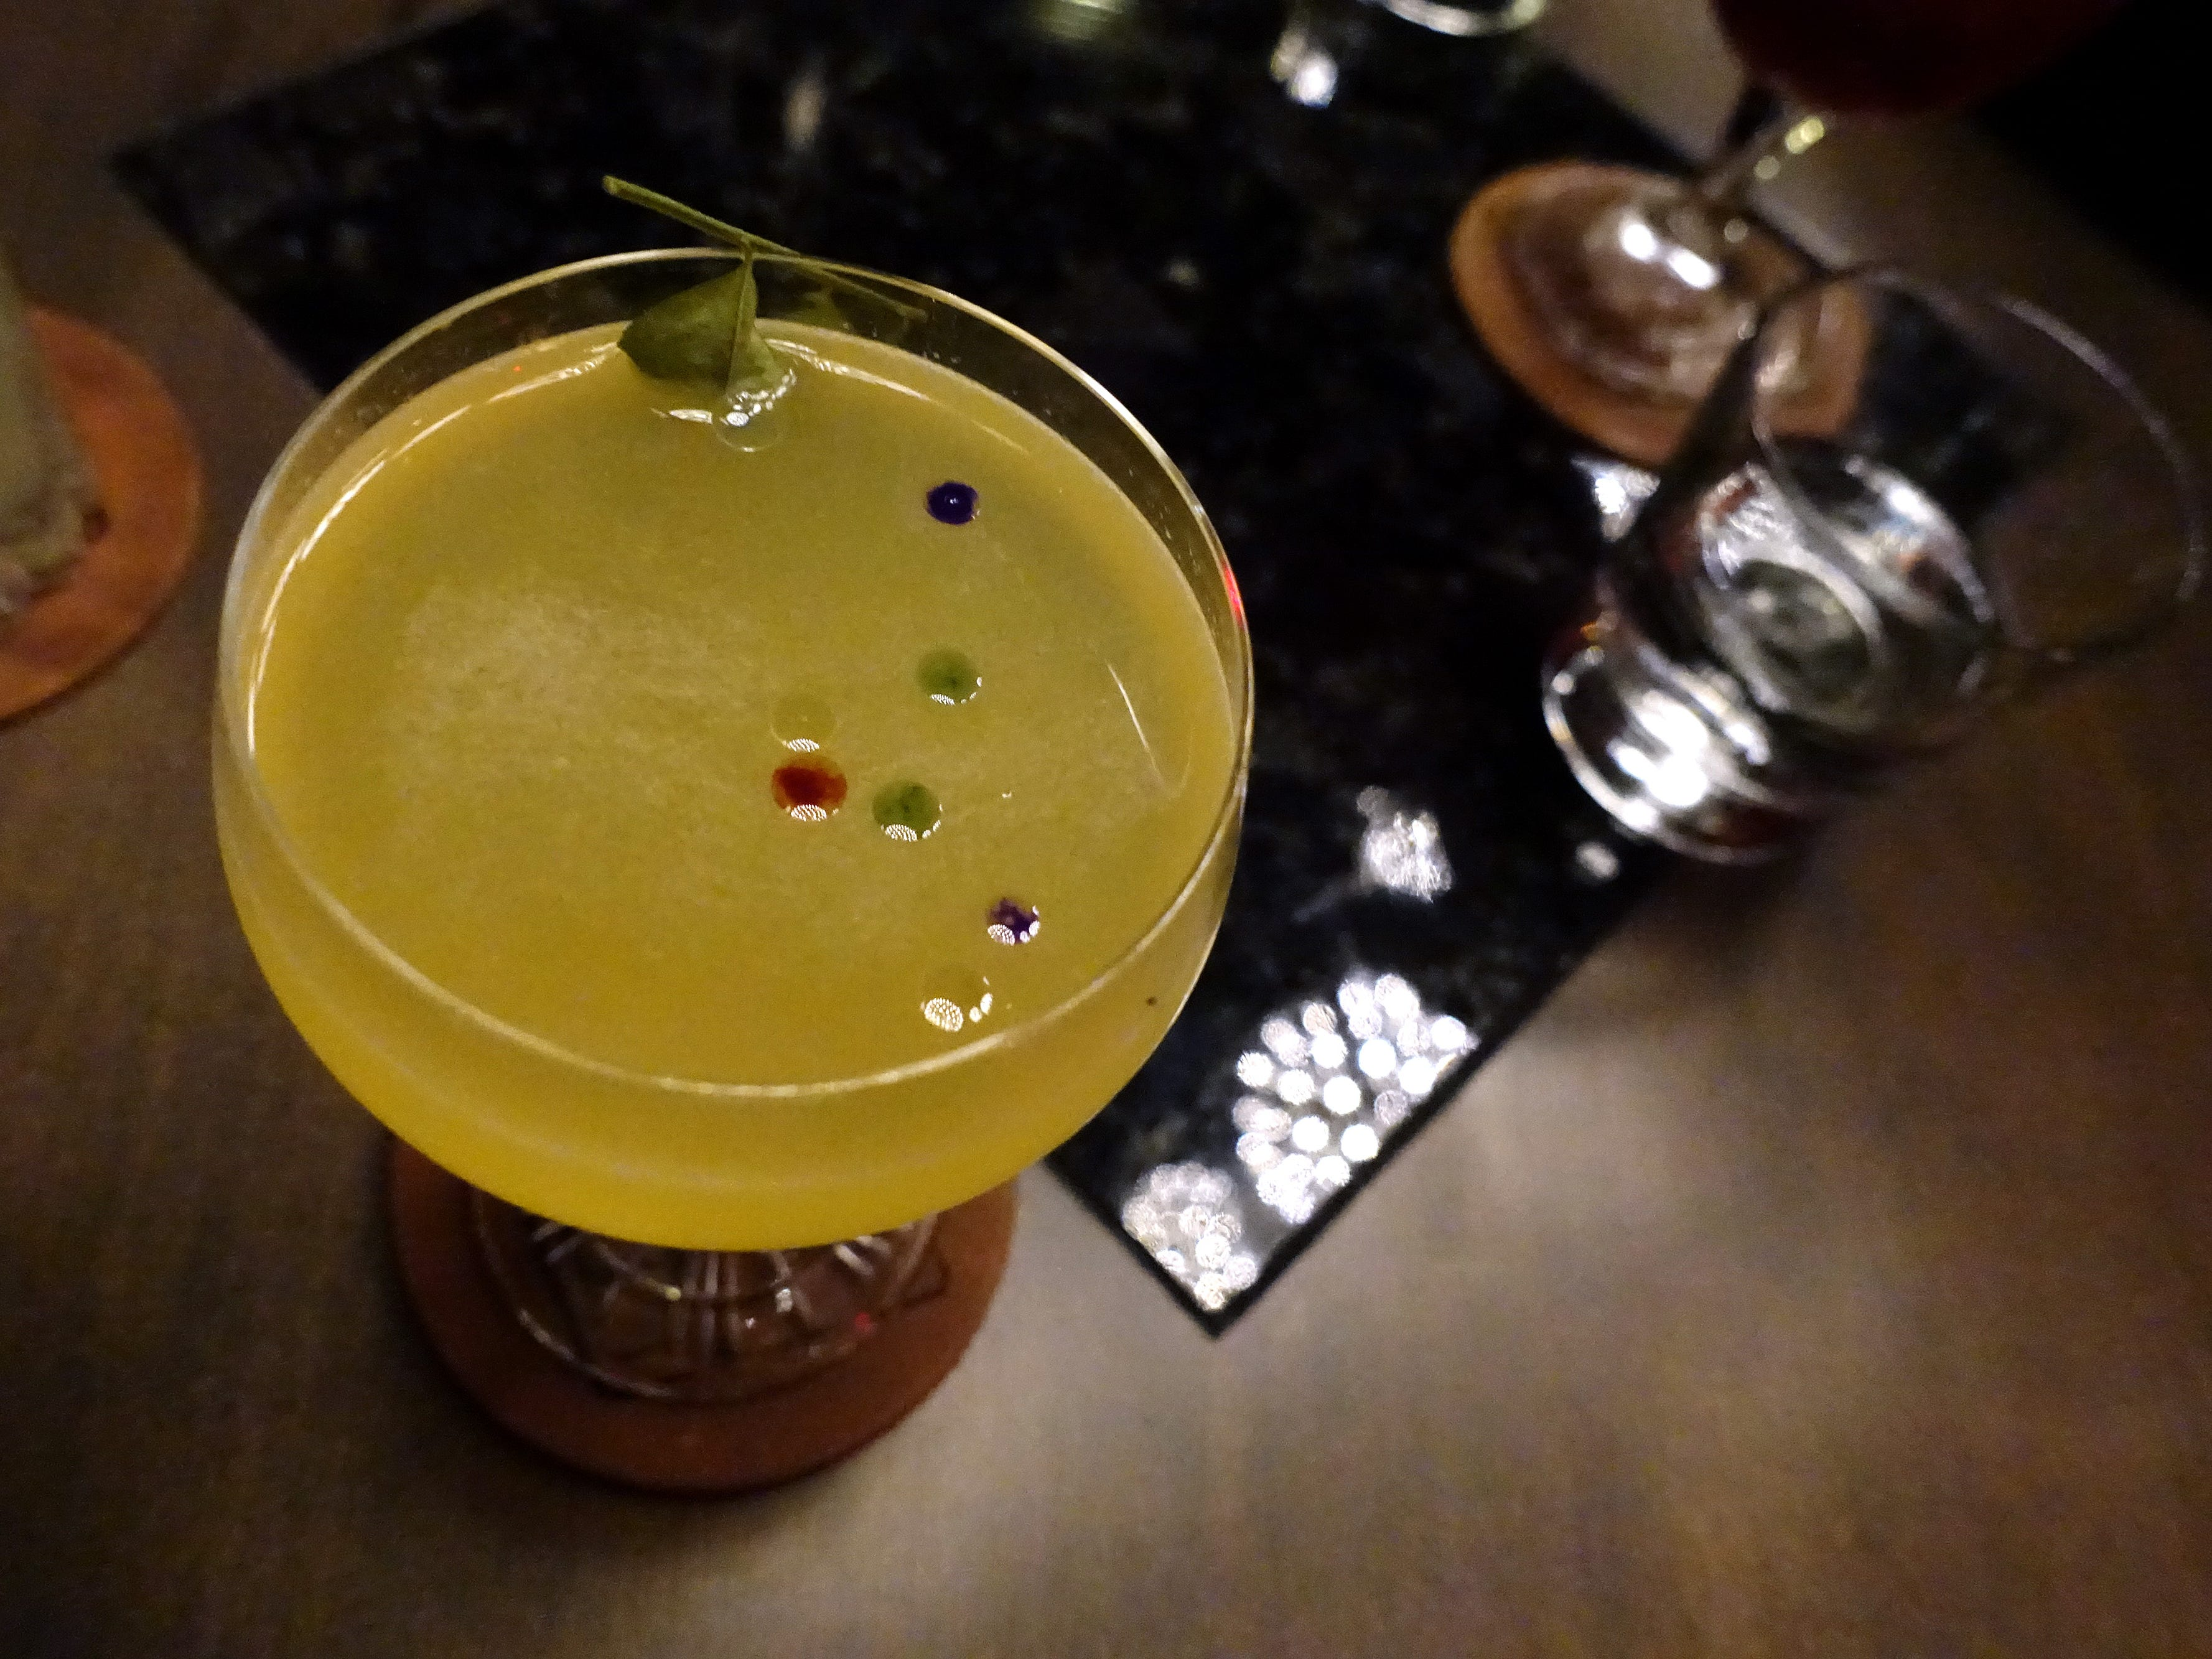 Daiqurry with Blended Island rum, LR curry syrup, fresh lime, Yellow Chartreuse and sichuan pepper oil at Little Rituals in Phoenix.